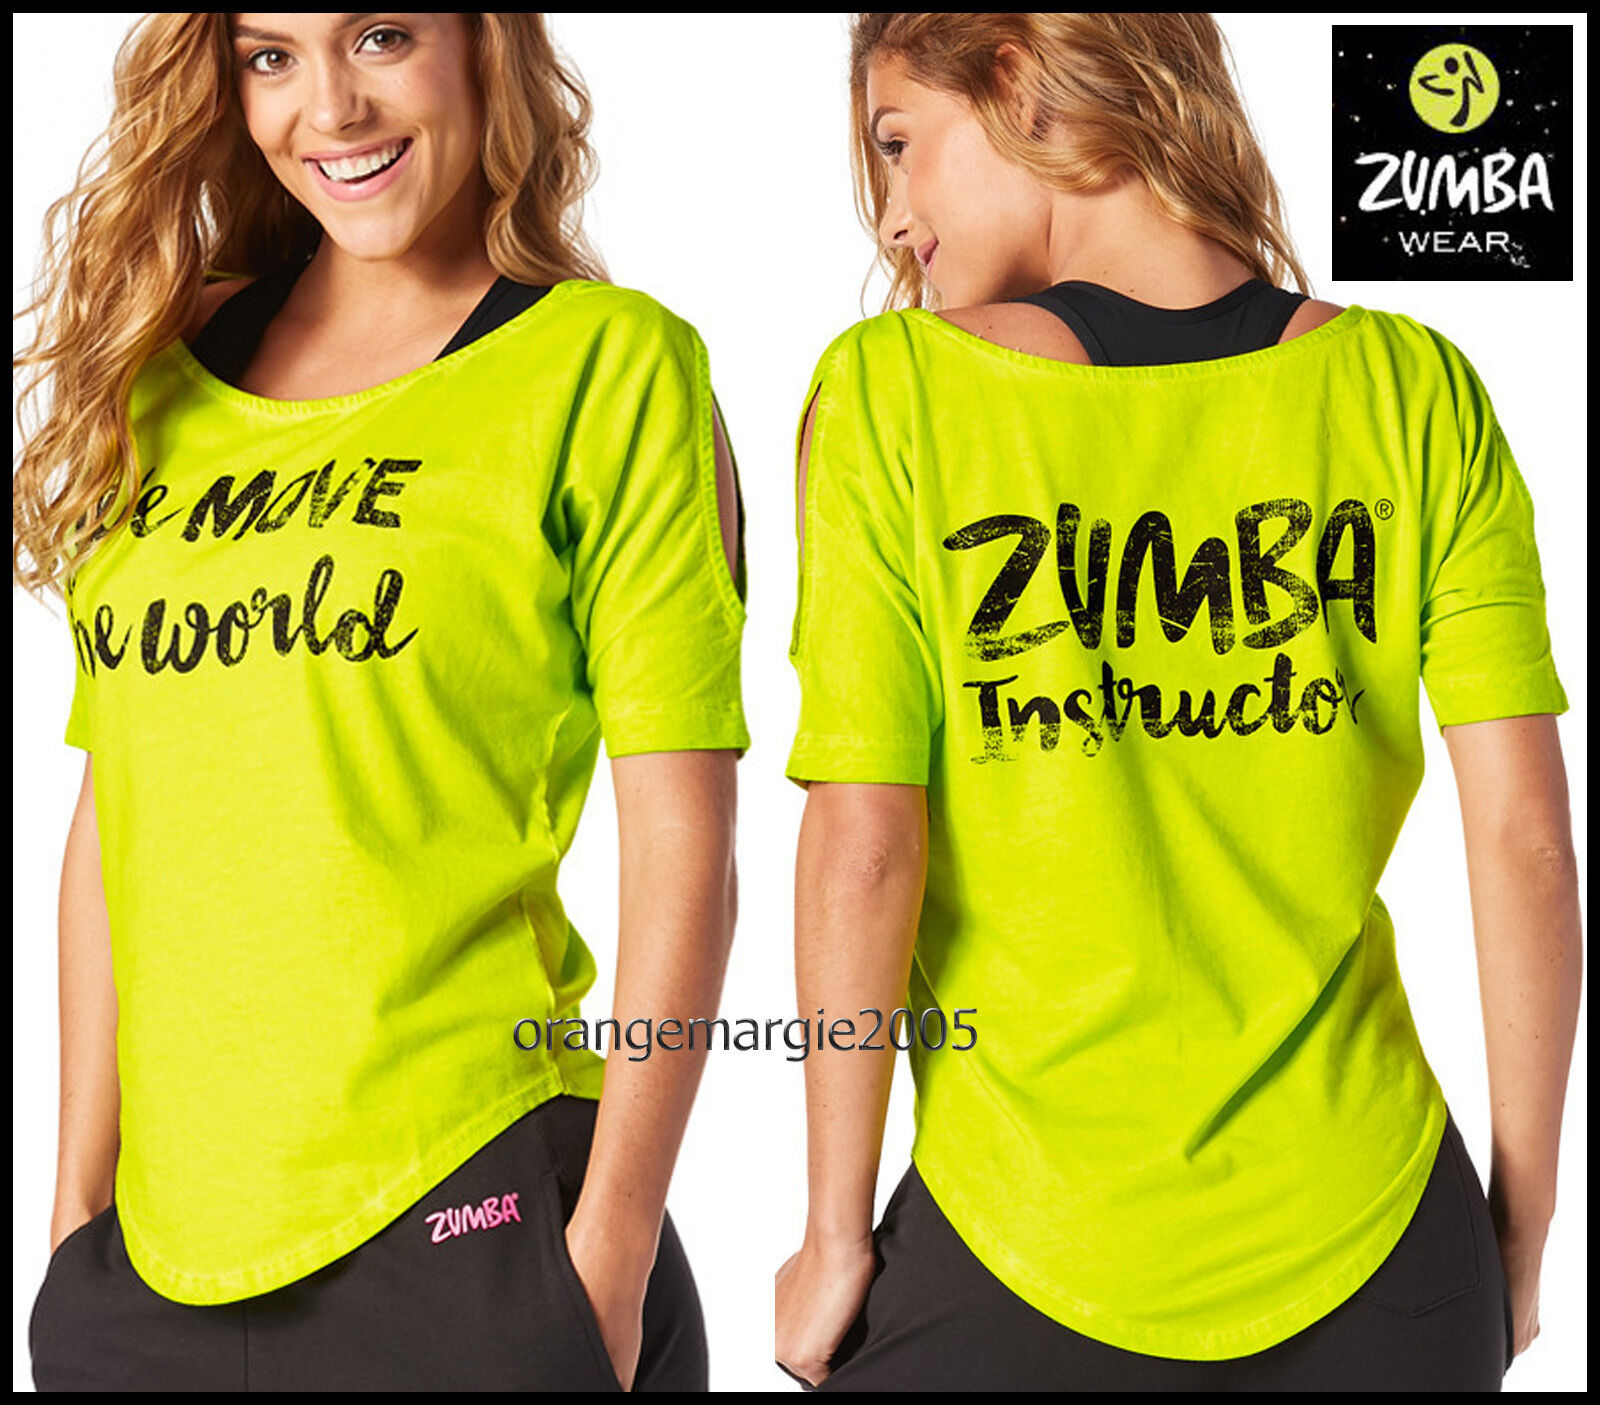 ZUMBA INSTRUCTOR Move the World Cold Shoulder Top Tee -fr.Convention Zin  L, XXL